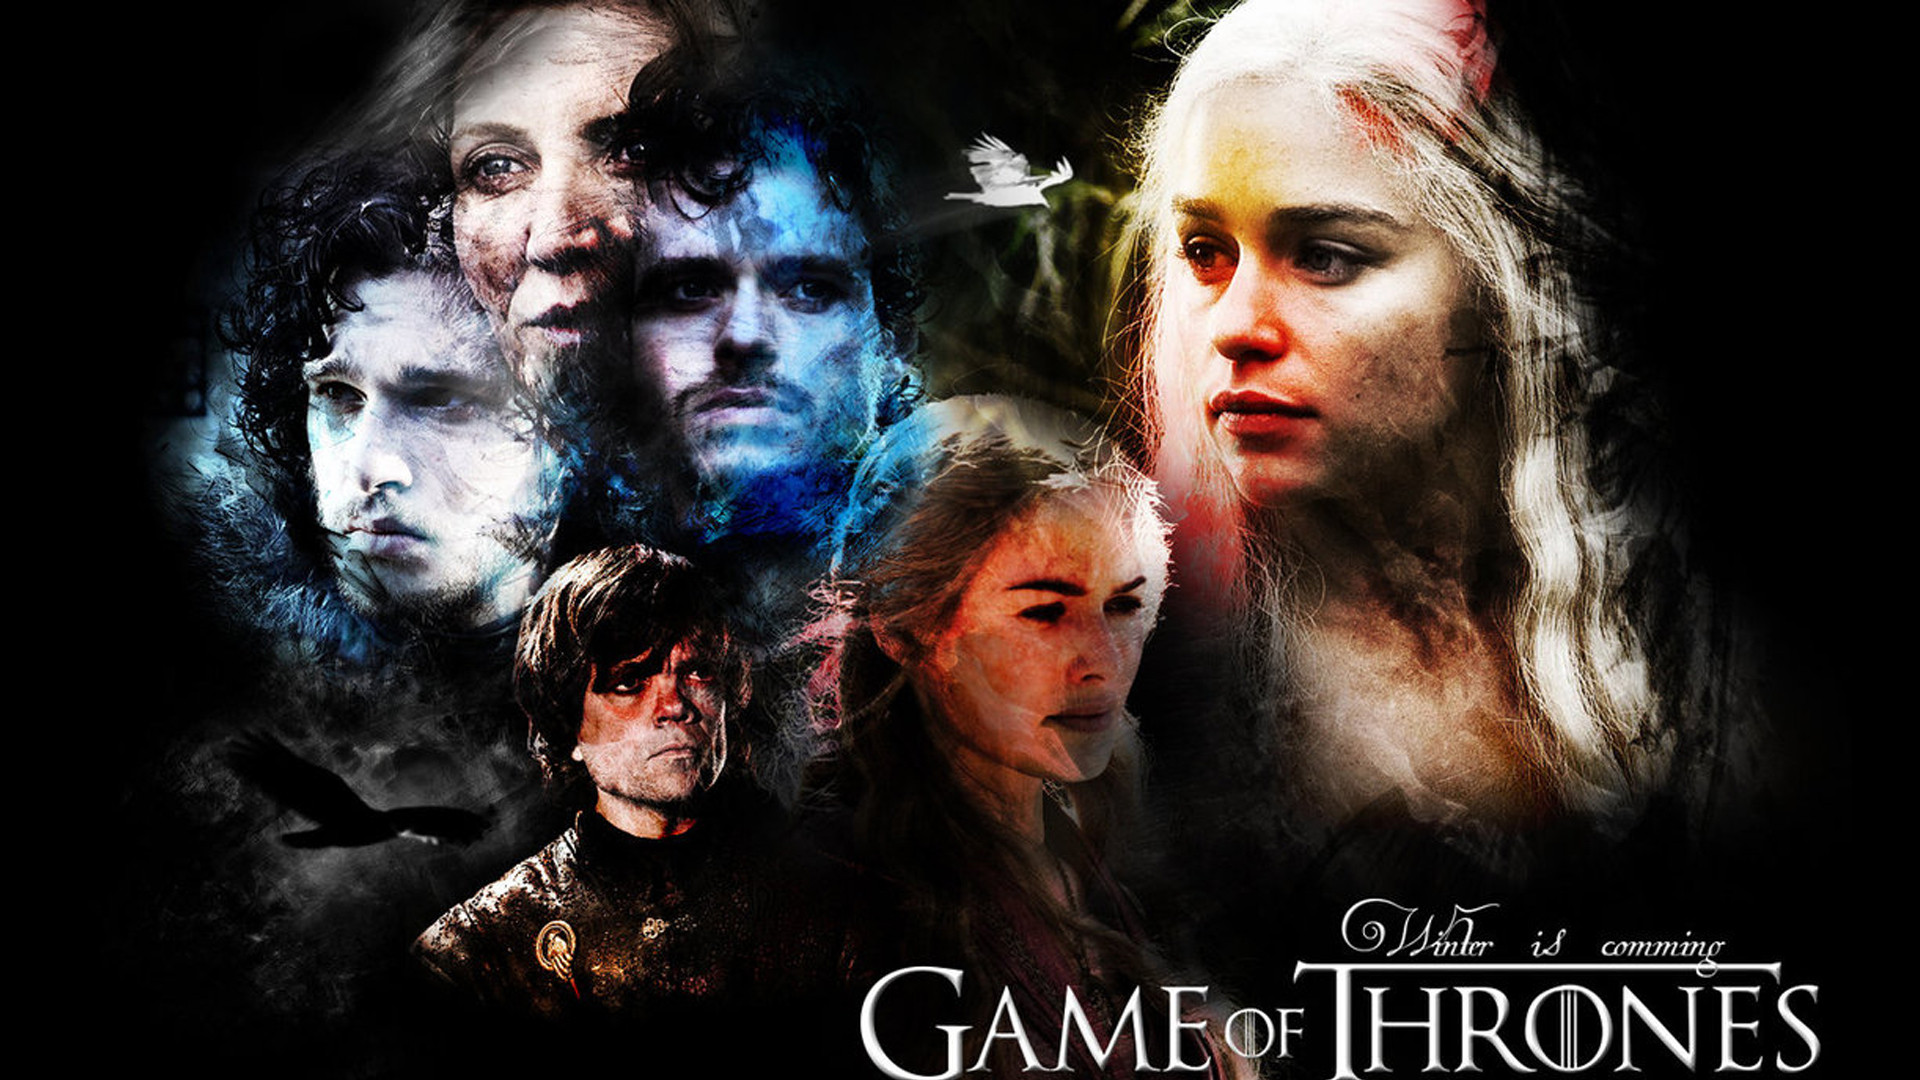 Game of Thrones Television Series - Wallpaper, High ...